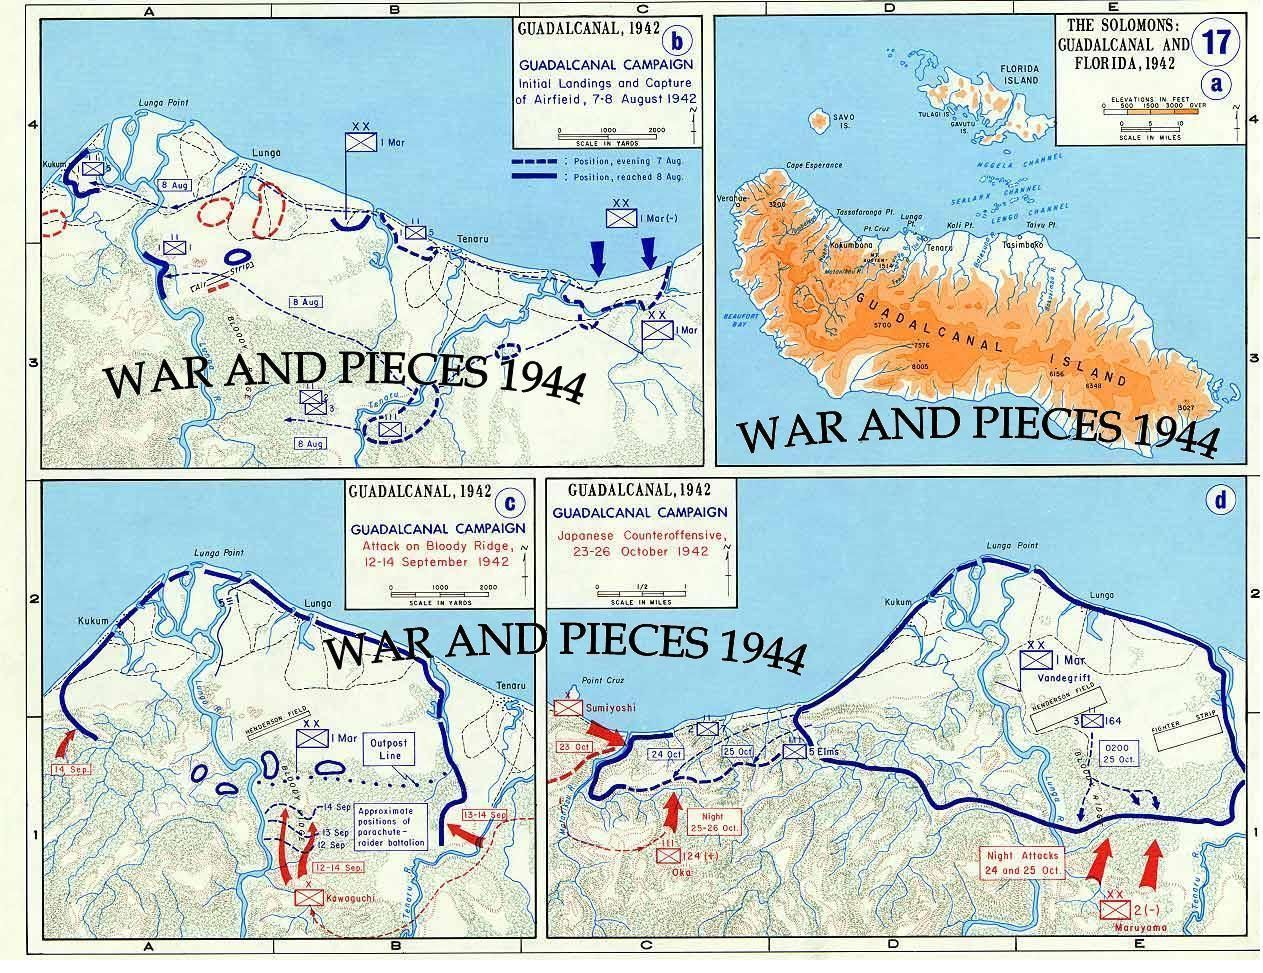 $4 - 1:6 Scale Ww Ii Pacific War Map Set #ebay #Collectibles ...